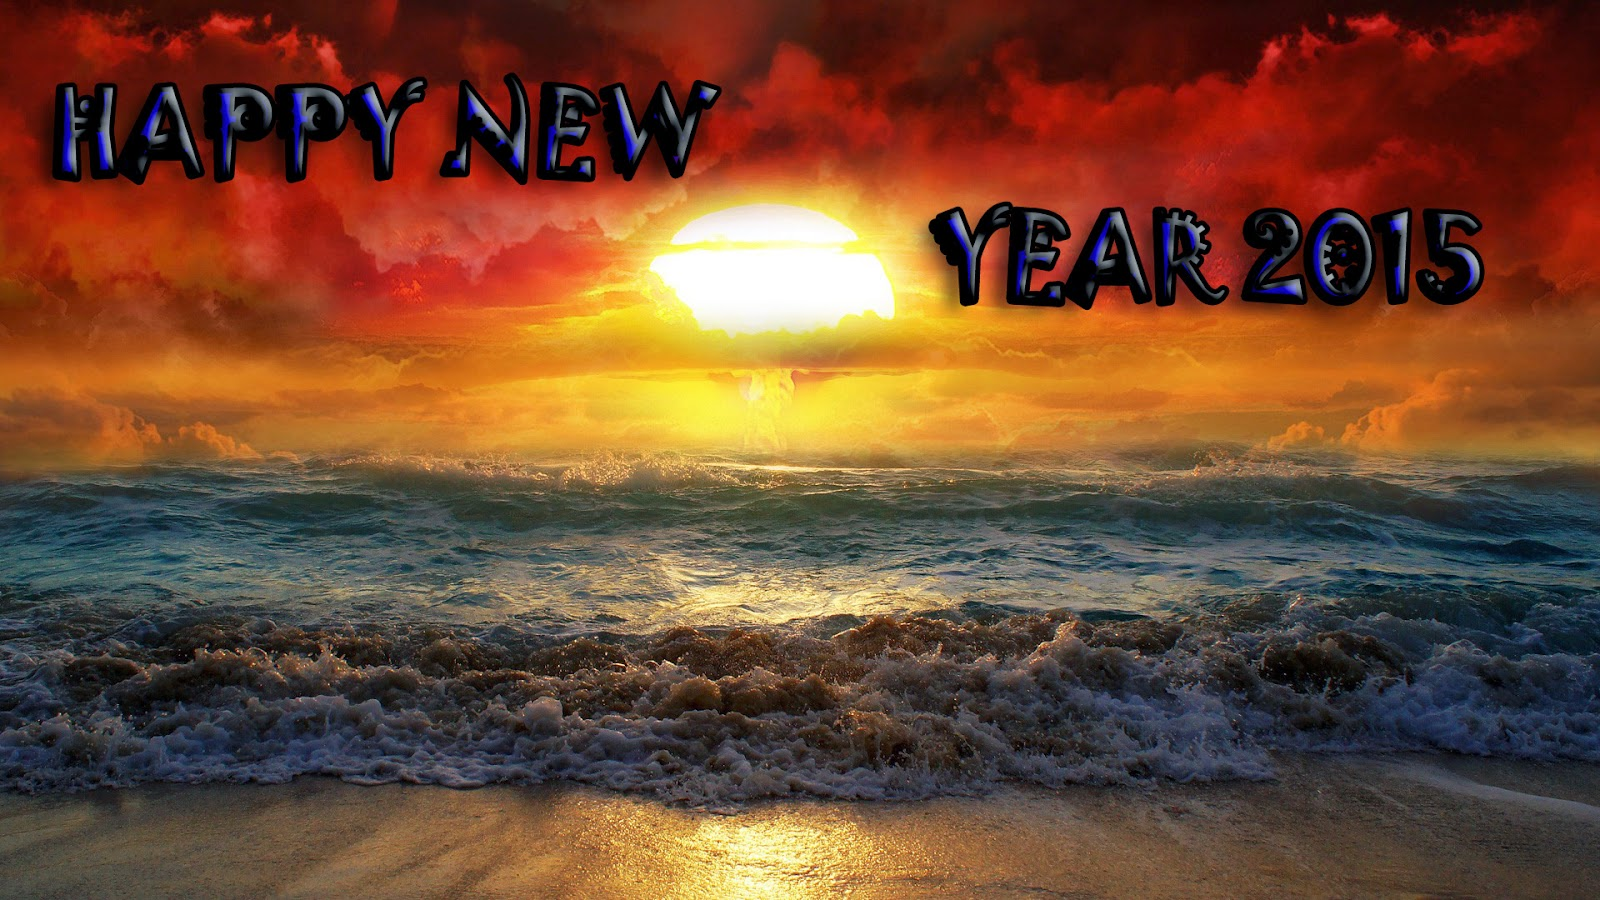 Happy New Year 2015 Cards - Beautiful Free Cards